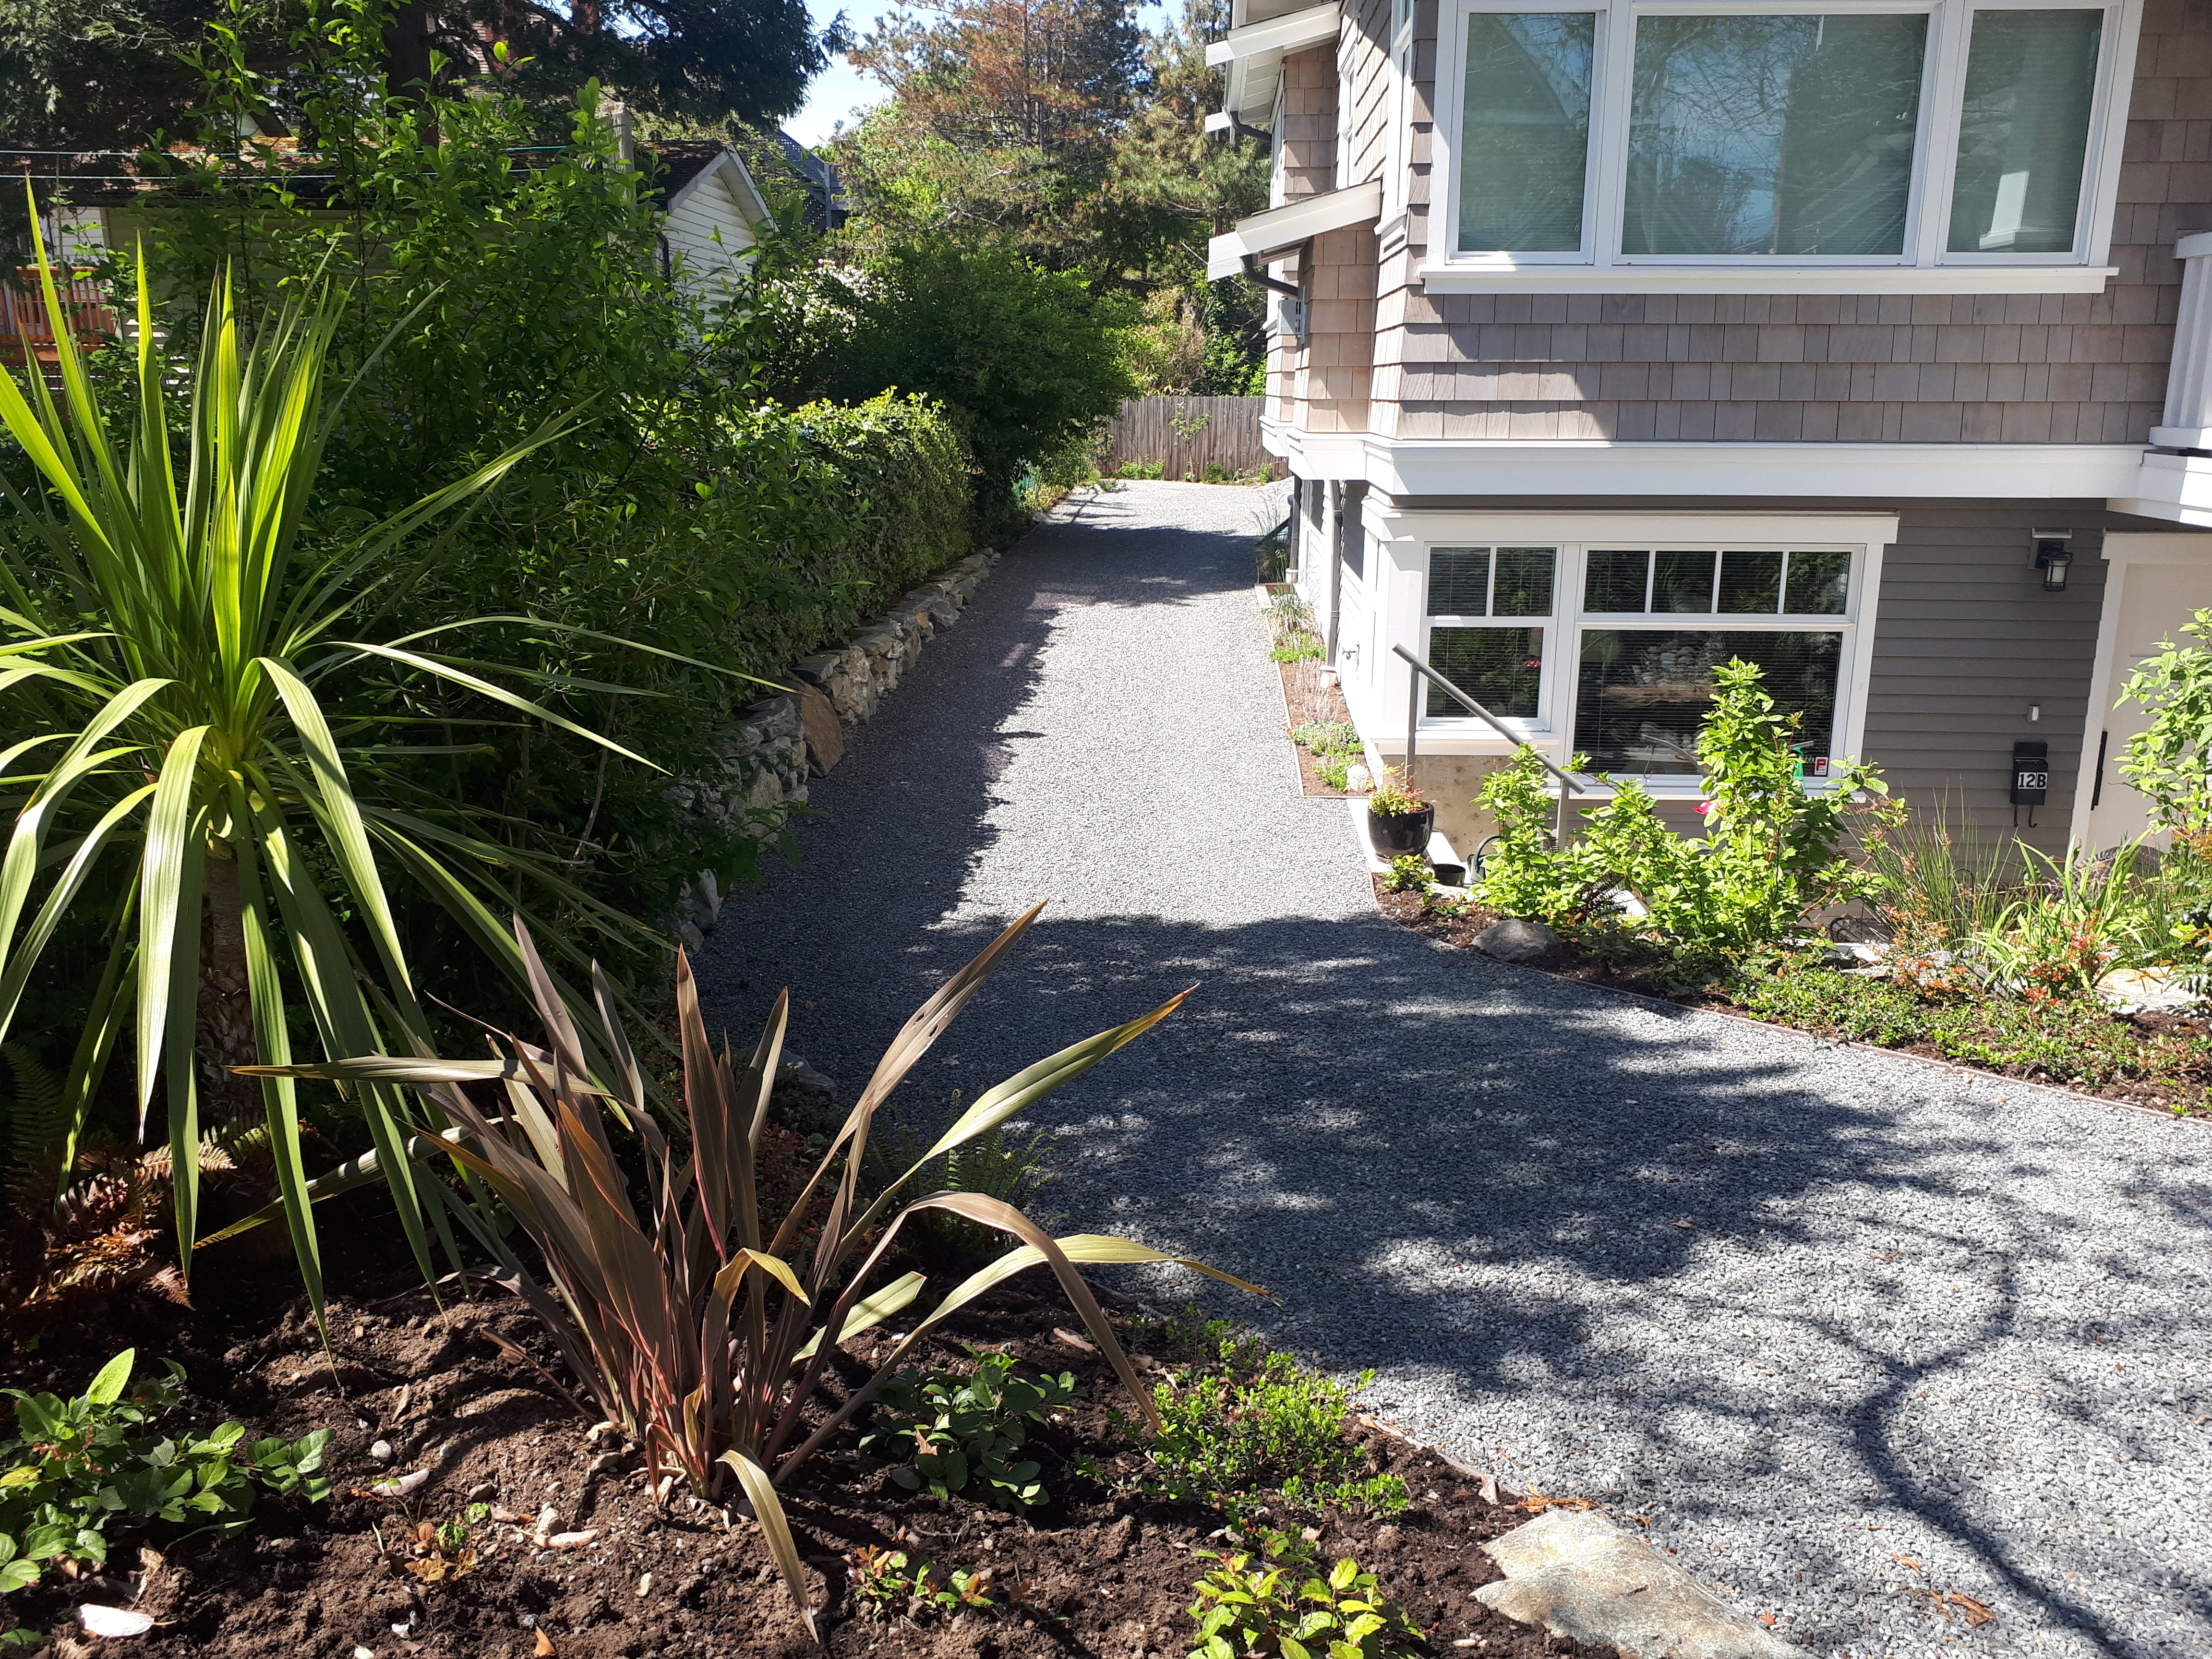 Green Driveway Stabilized and Porous Gravel and Grass